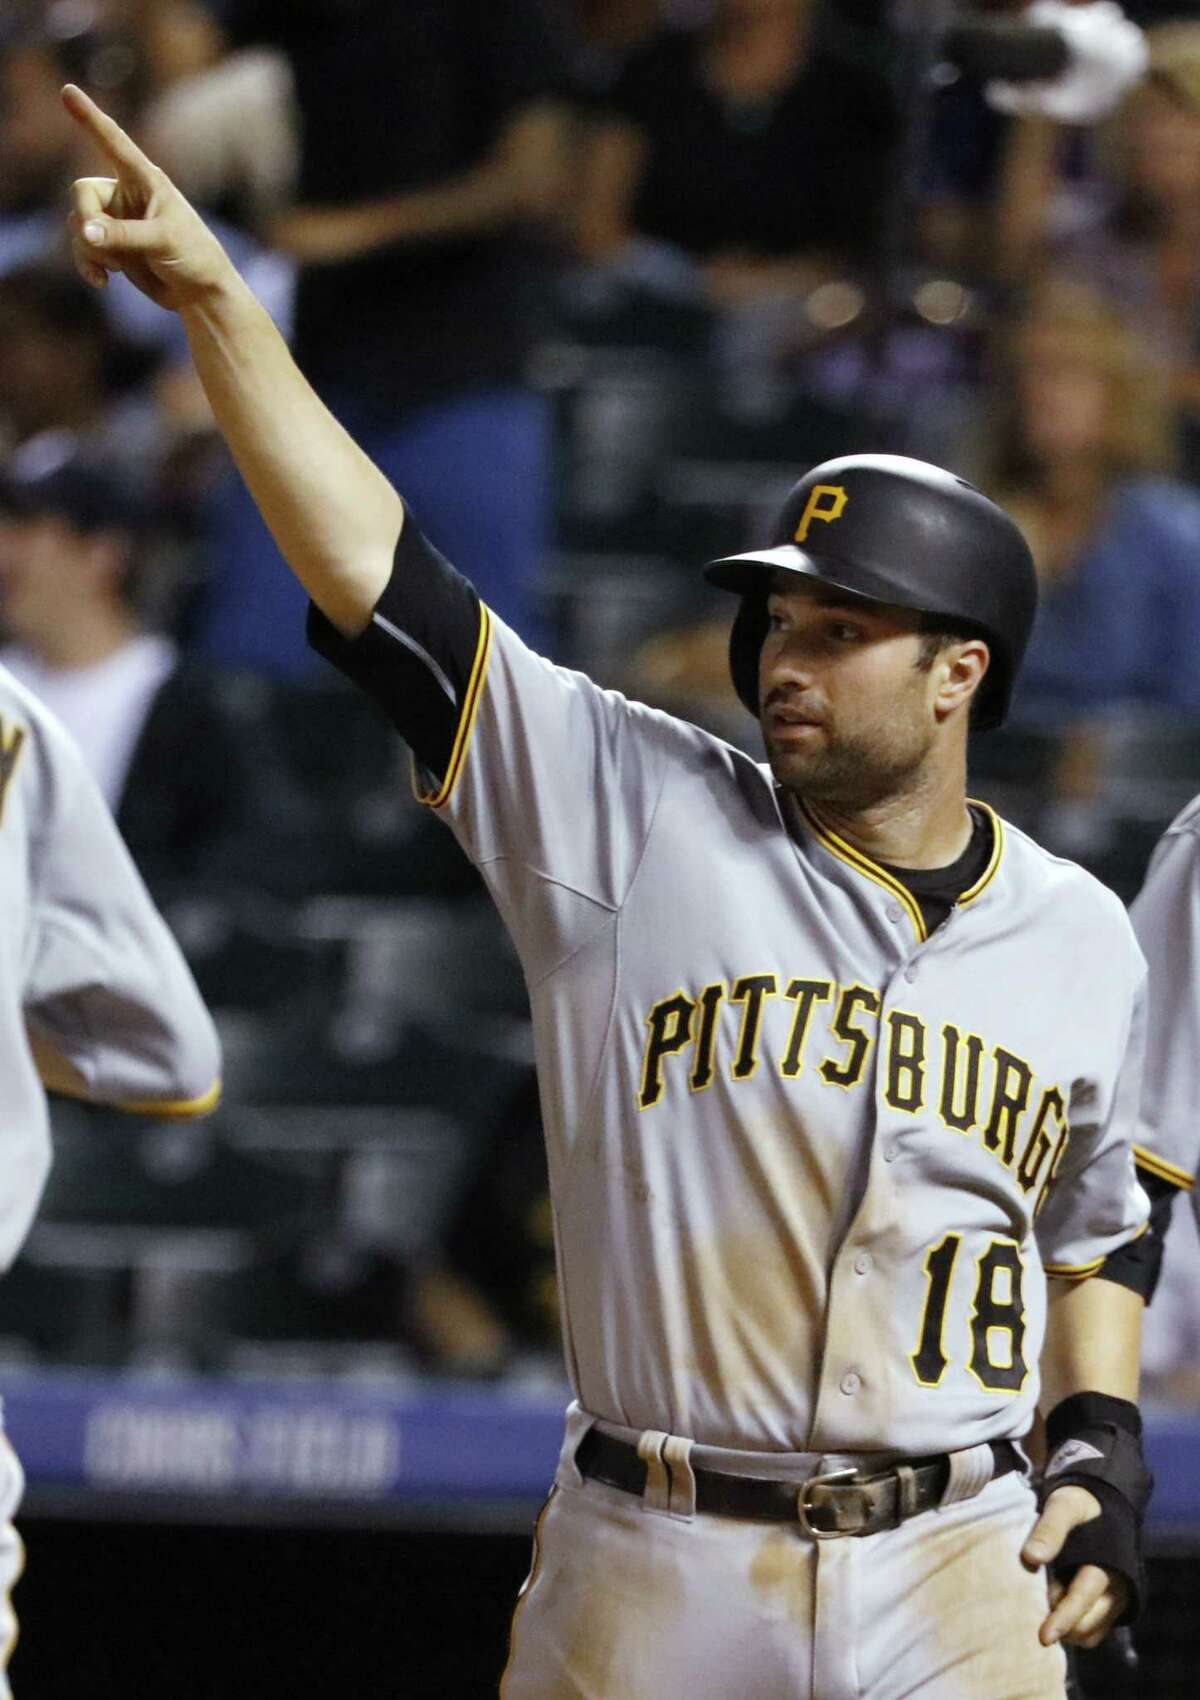 FILE - This Sept. 23, 2015 file photo shows Pittsburgh Pirates' Neil Walker gesturing to Sean Rodriguez after Rodriguez hit a three-run double against the Colorado Rockies during the ninth inning of a baseball game in Denver. The New York Mets have acquired Neil Walker from the Pittsburgh Pirates for left-hander Jonathon Niese. The teams agreed to the swap of established big leaguers Wednesday, Dec. 9, 2015, at the winter meetings. (AP Photo/Jack Dempsey, file)